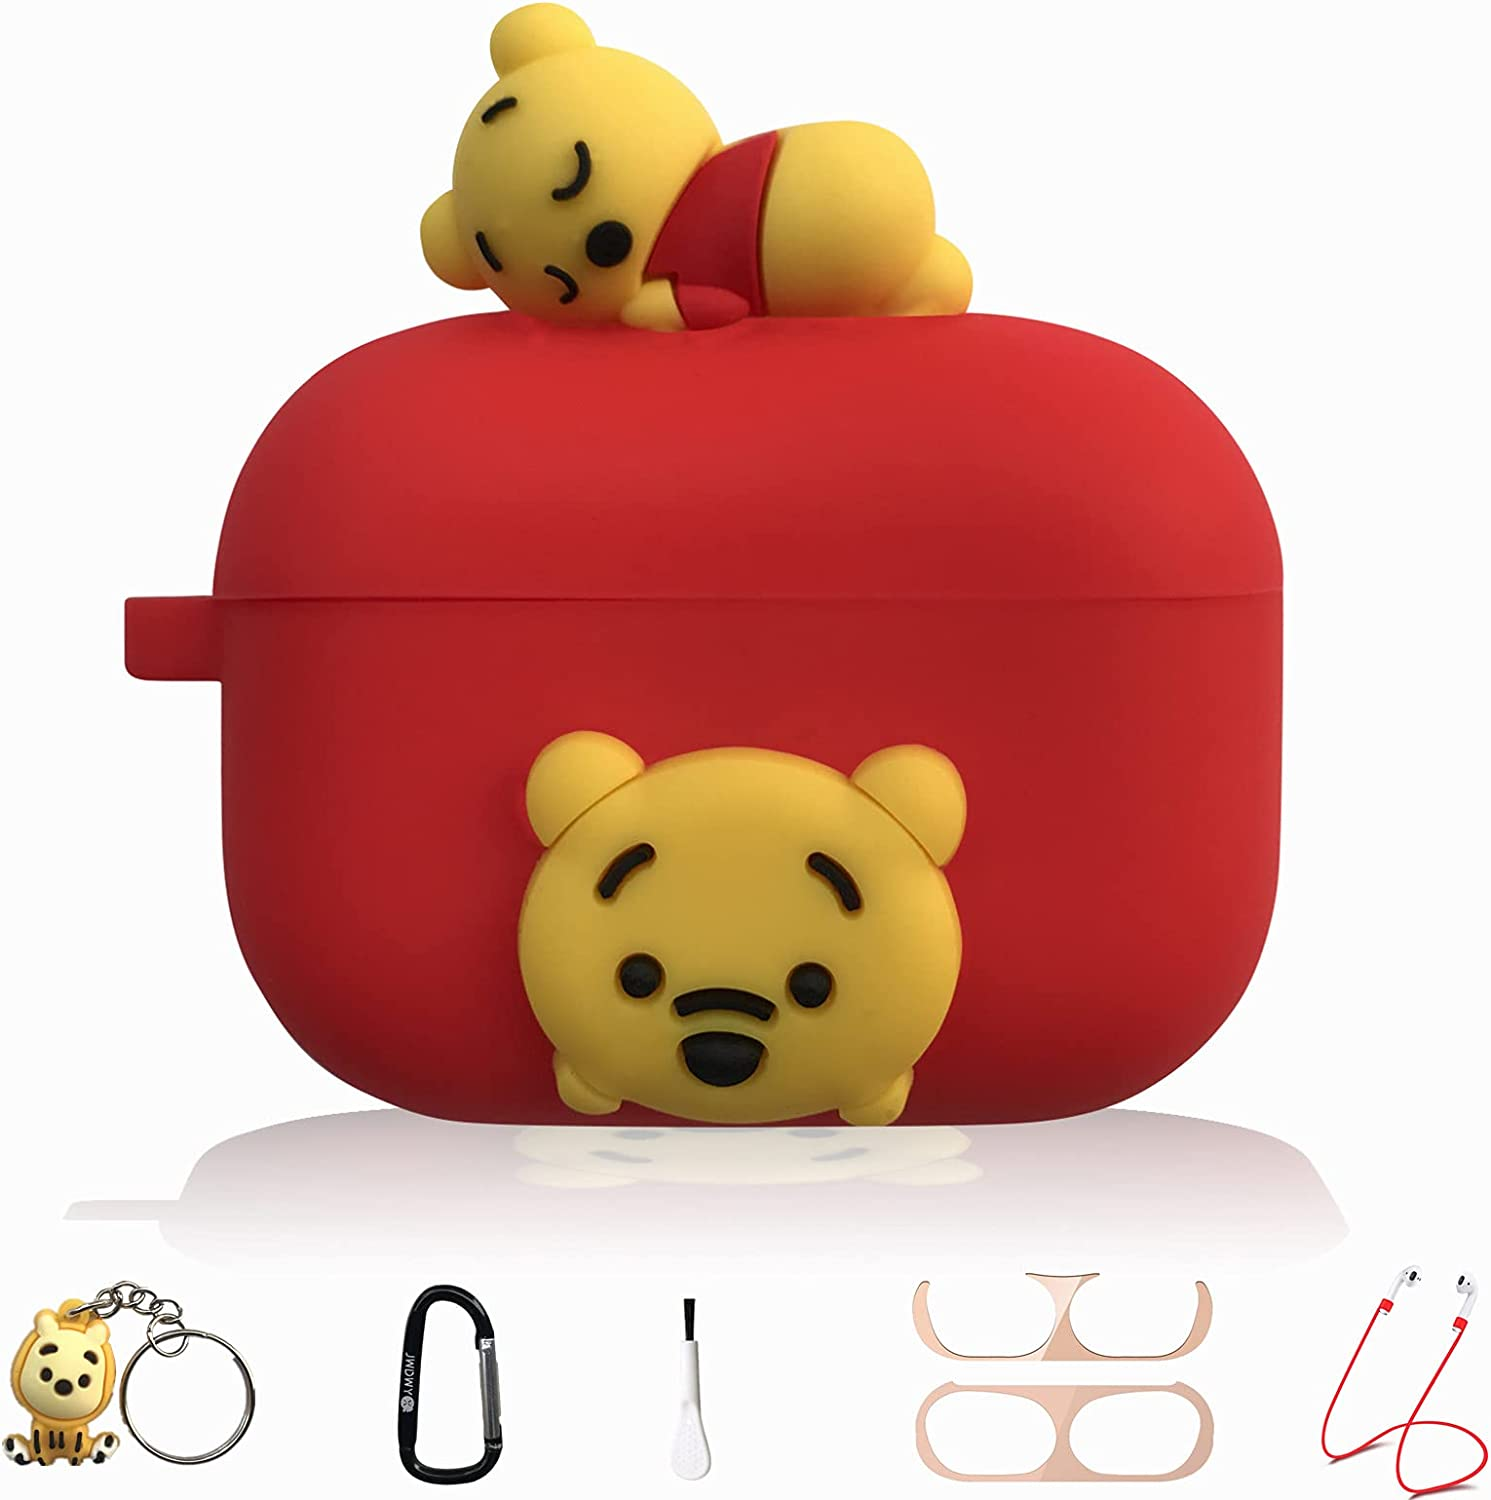 Red Winnie the Pooh Cartoon Silicone Case for Apple Airpod Pro, 7 in 1 Accessories Set Protective Cover, Silicone Case/Keychain/Carabiner/Metal dust Sticker/Cleaning Brush/Anti-Lost Rope,The Best Gift